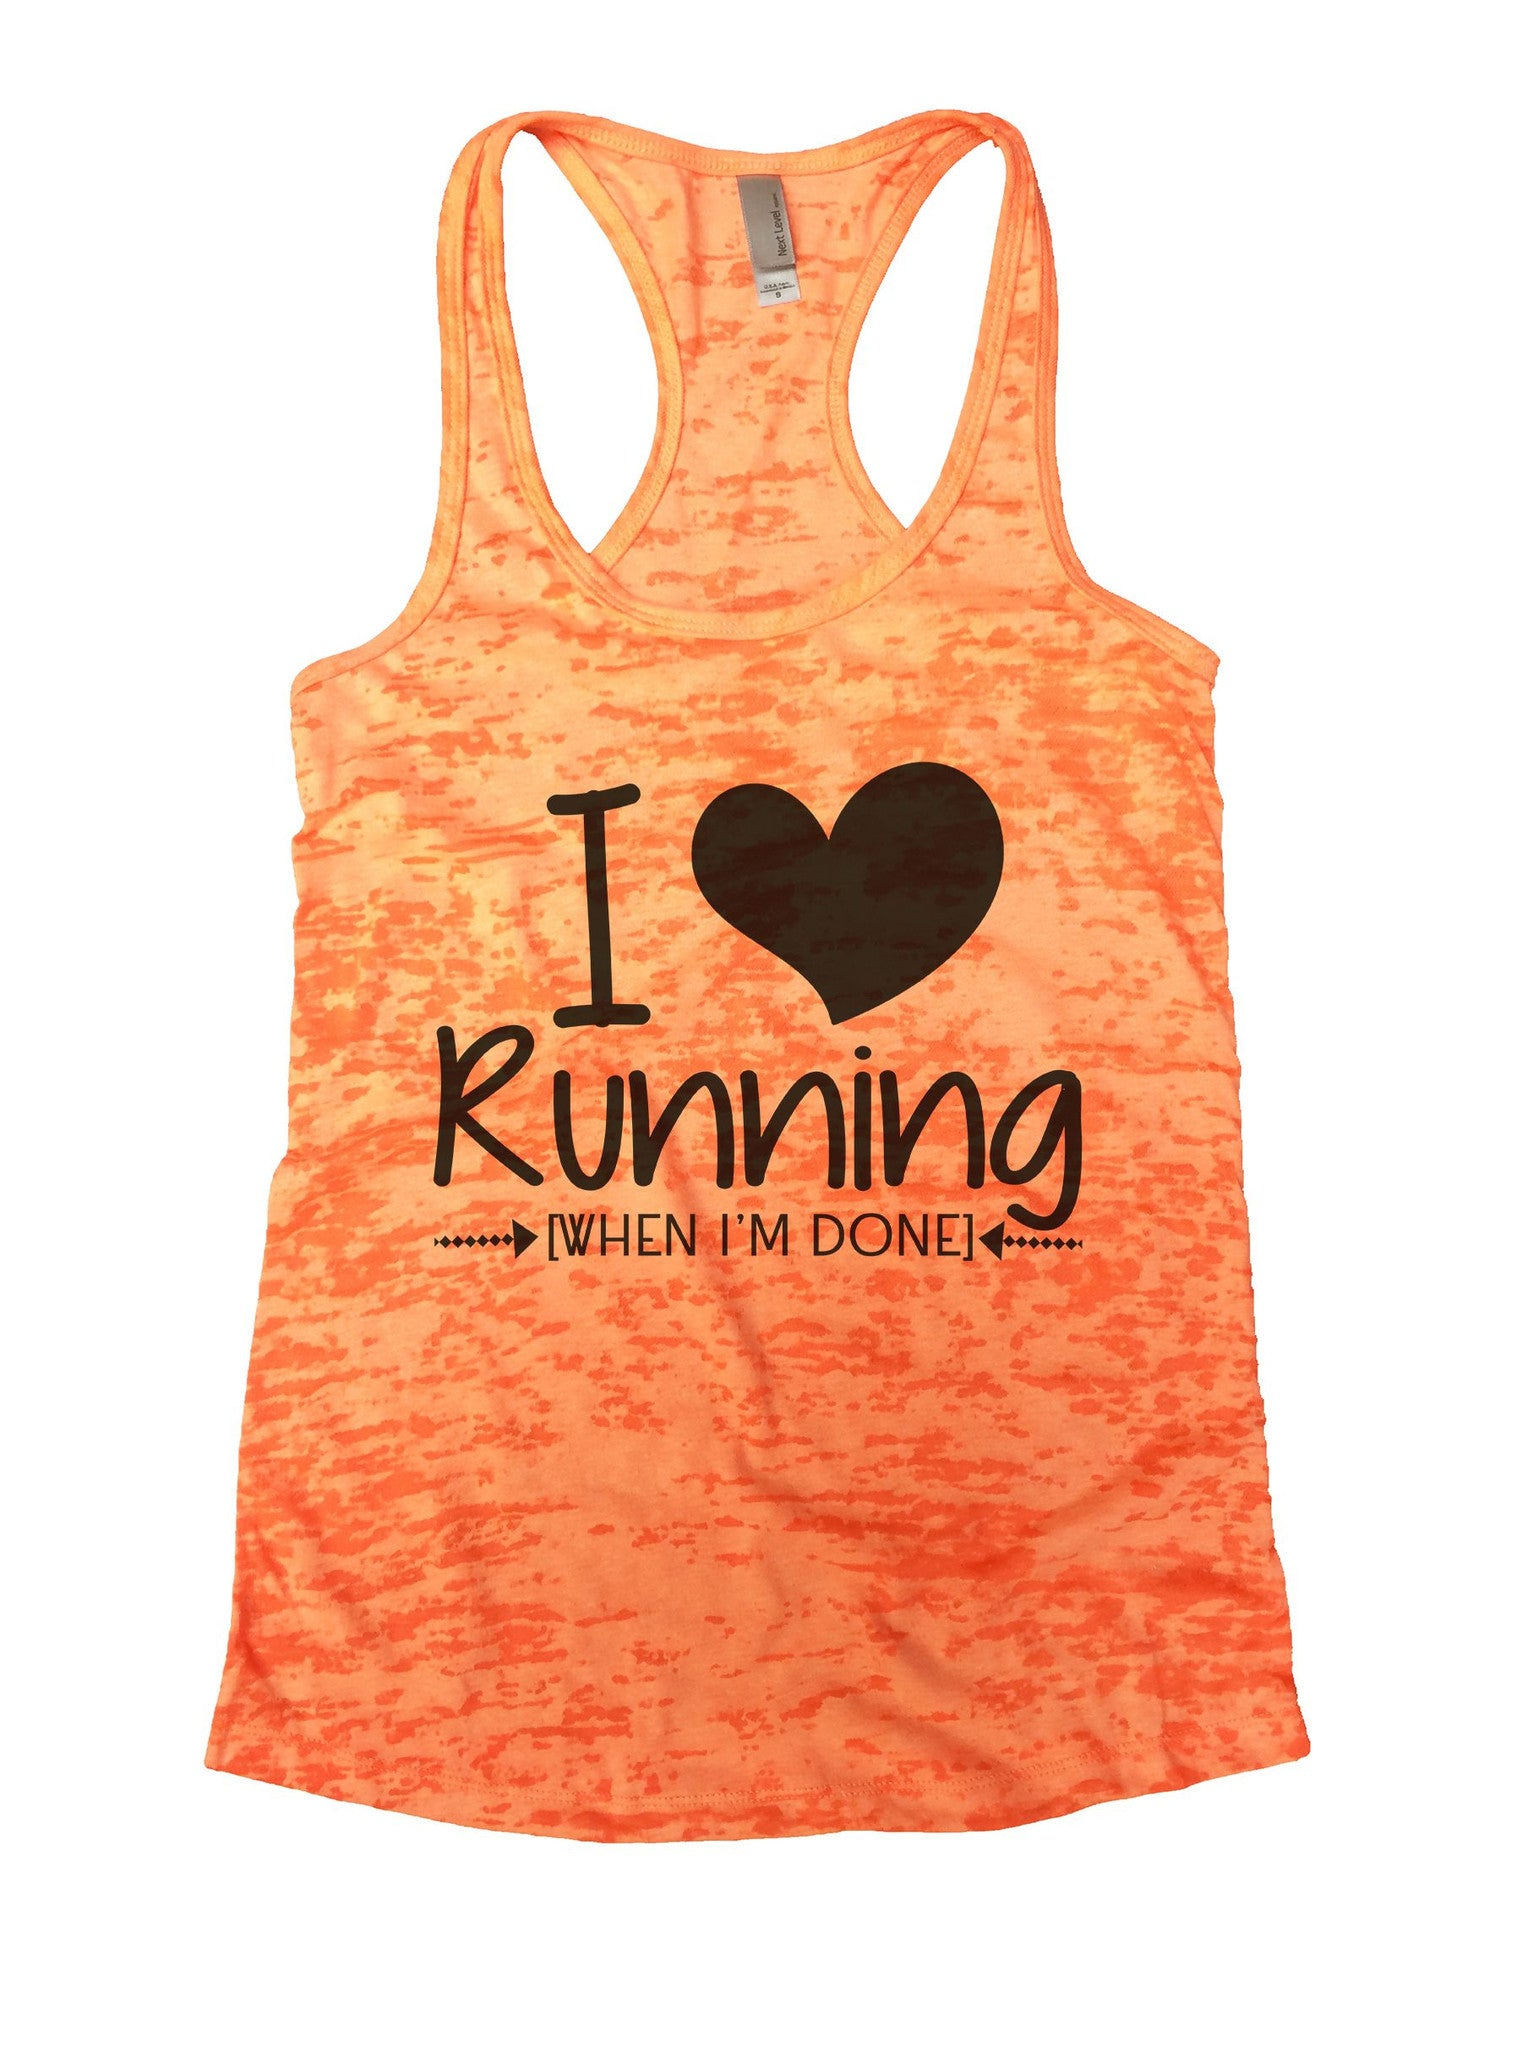 I Love Running [When I'm Done] Burnout Tank Top By BurnoutTankTops.com - 1013 - Funny Shirts Tank Tops Burnouts and Triblends  - 3